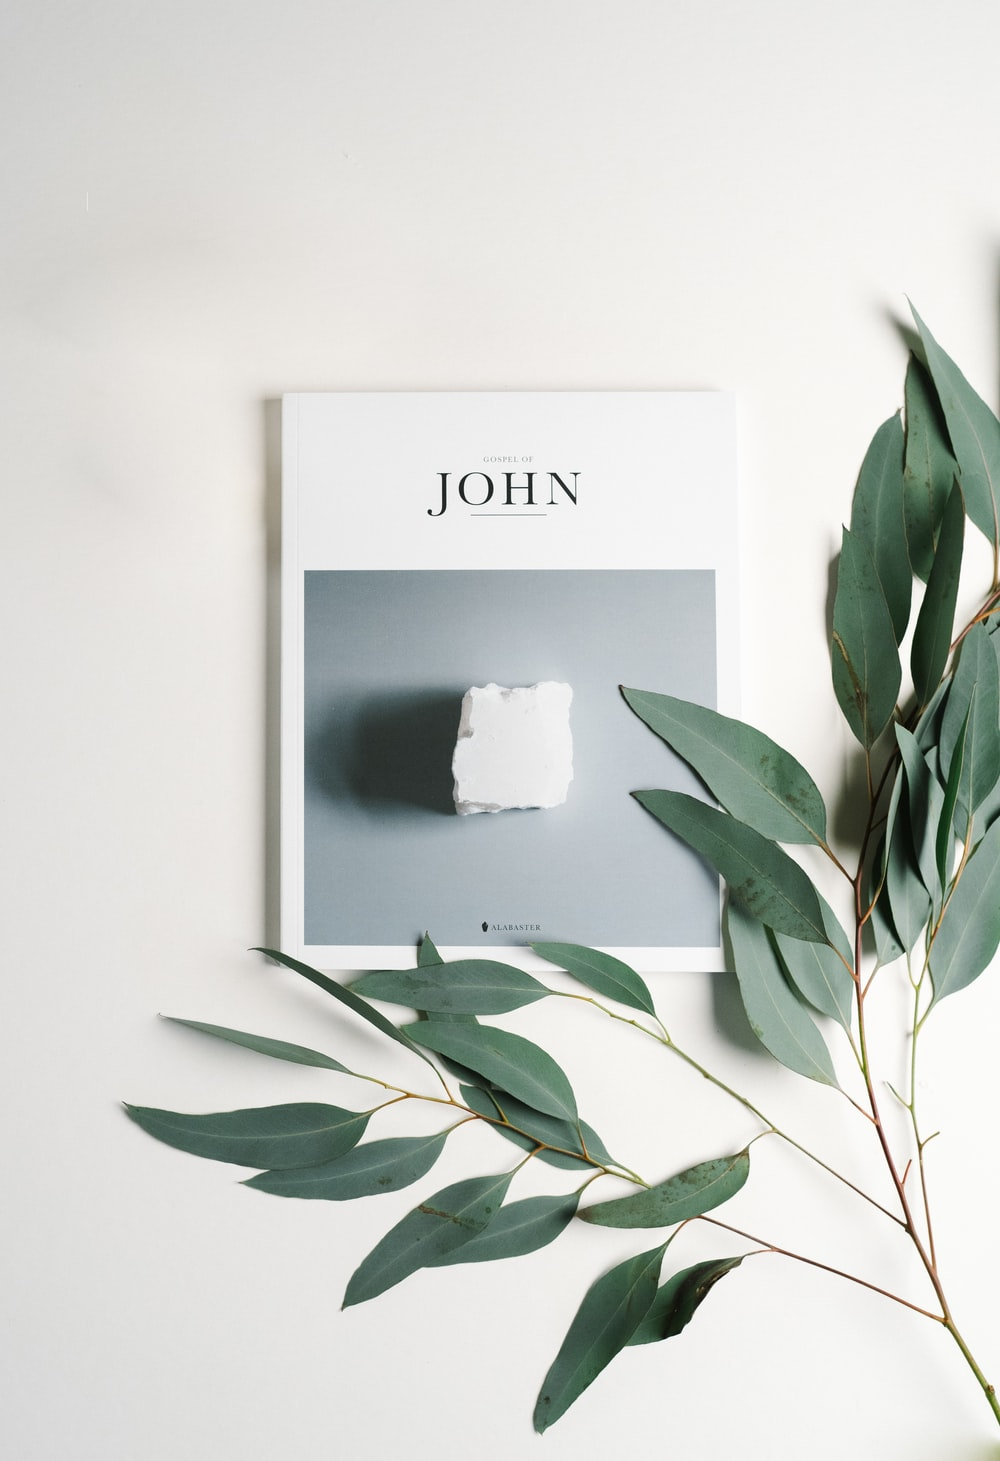 John card and green-leafed plant